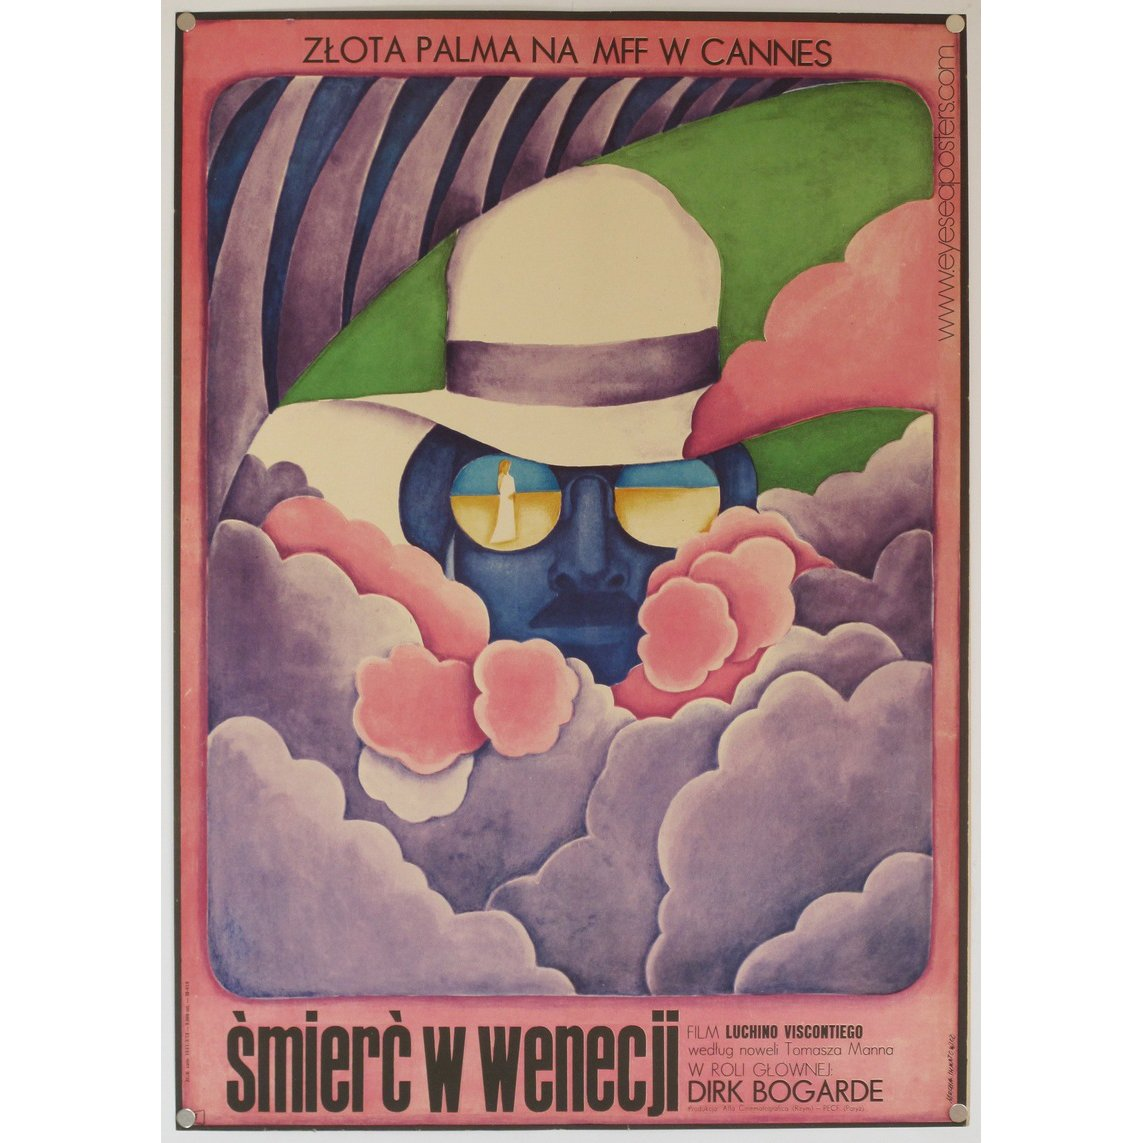 Smierc W Wenecji (Death in Venice), original Polish film poster by Maria Ihnatowicz c. 1971  Photo 7 of 10 in 10 Posters from Poland's Golden Age of Graphic Design